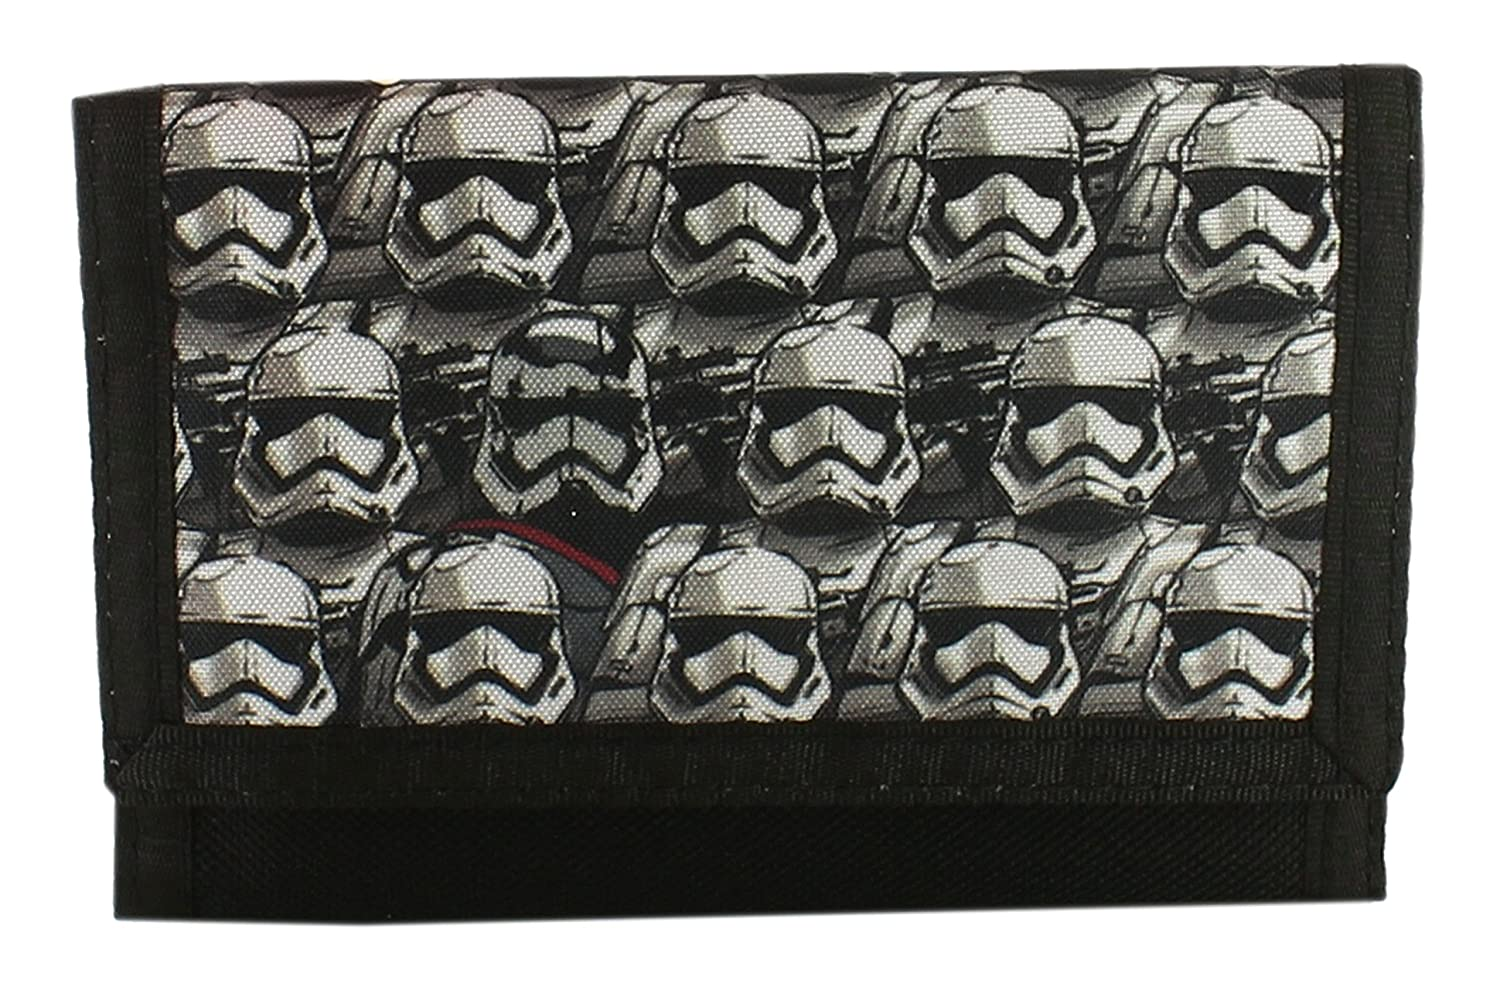 Star Wars Wallet 2 Bags & Accessories Synthetic Material Kids Wallets & Purses Black/White